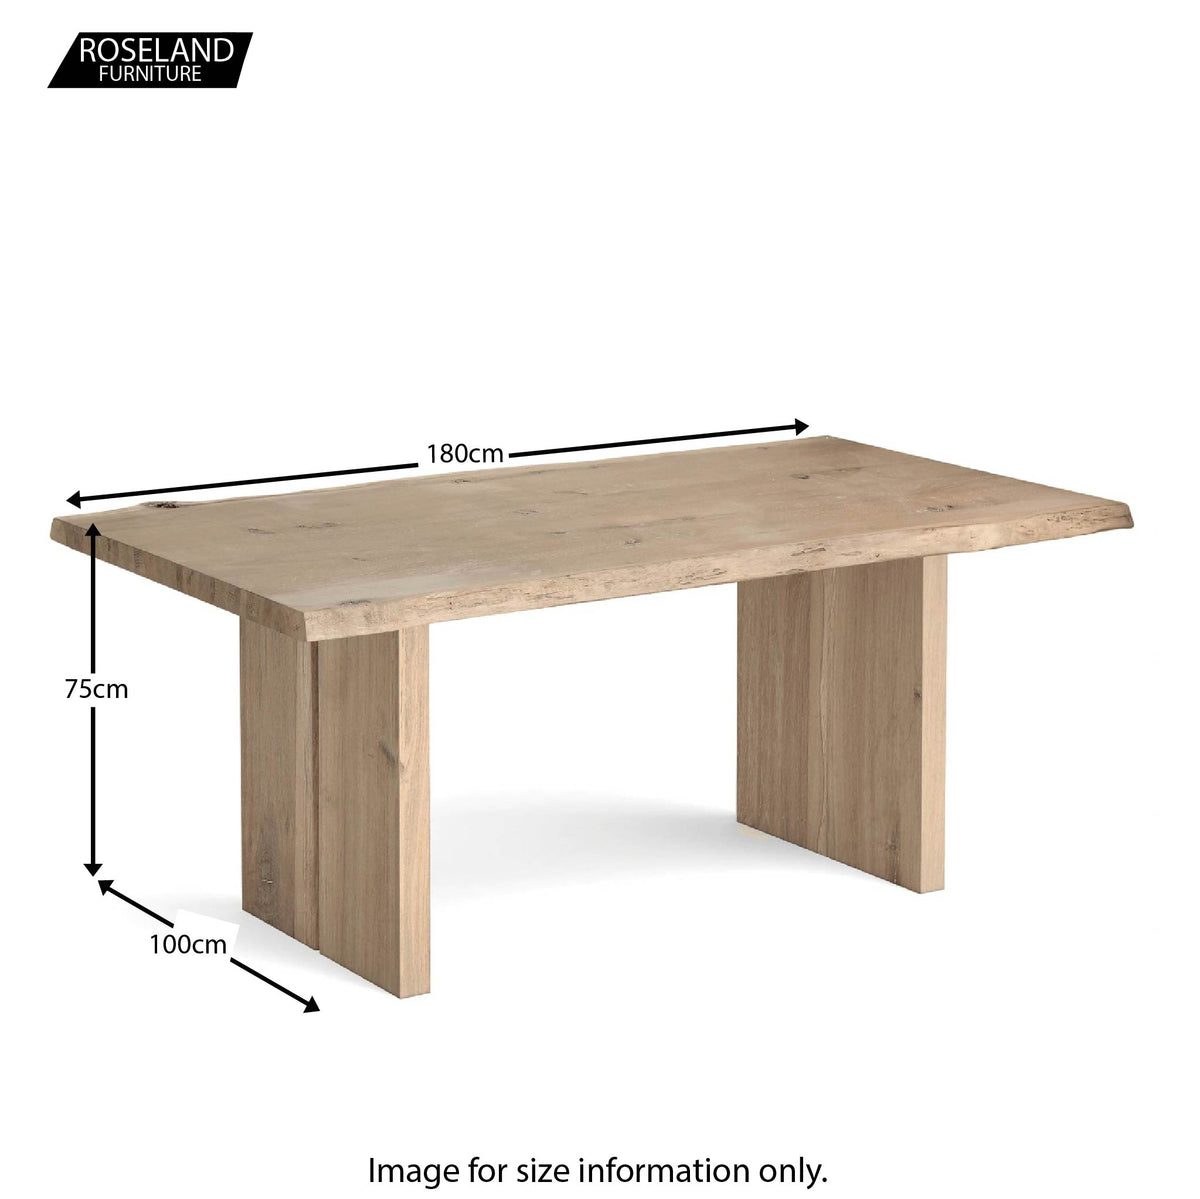 Dimensions - Oak Mill 180cm Dining Table - Wood Base - White Oil